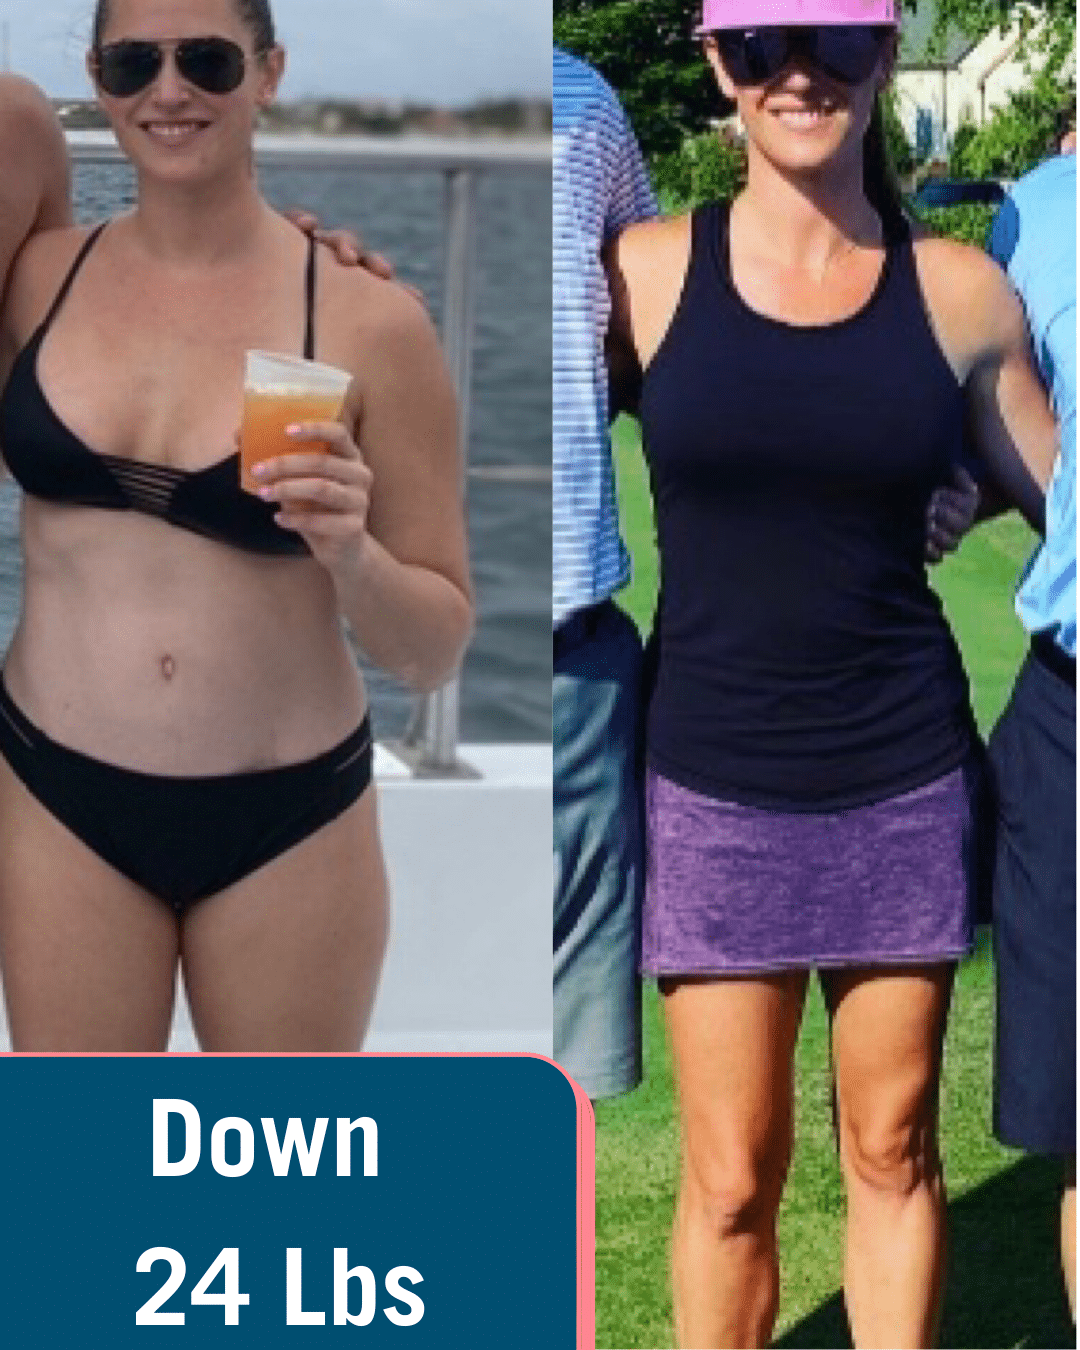 Woman in bathing suit and same woman in black shirt